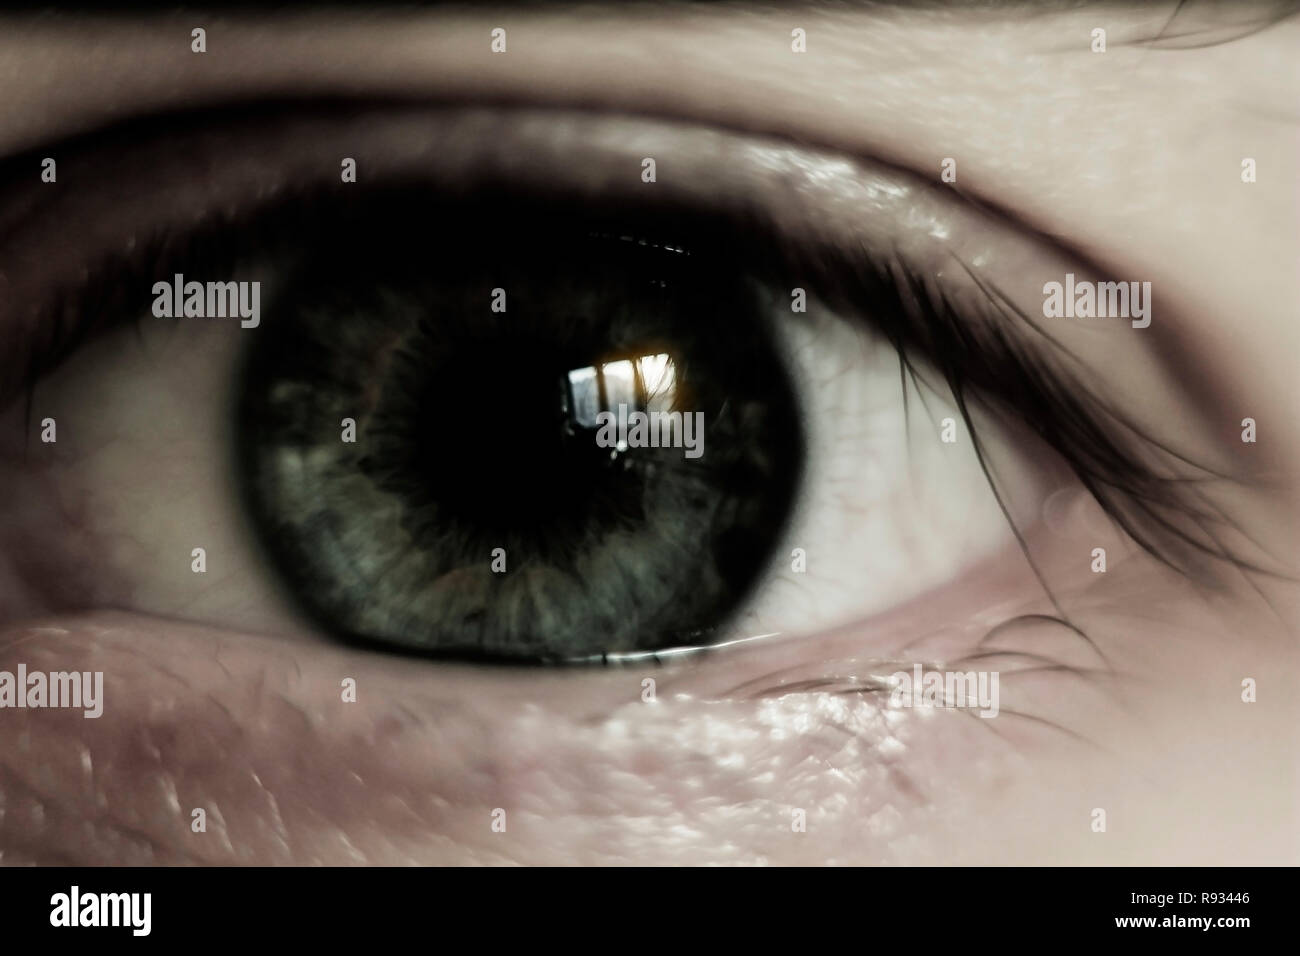 closeup of one eye of a young man - Stock Image